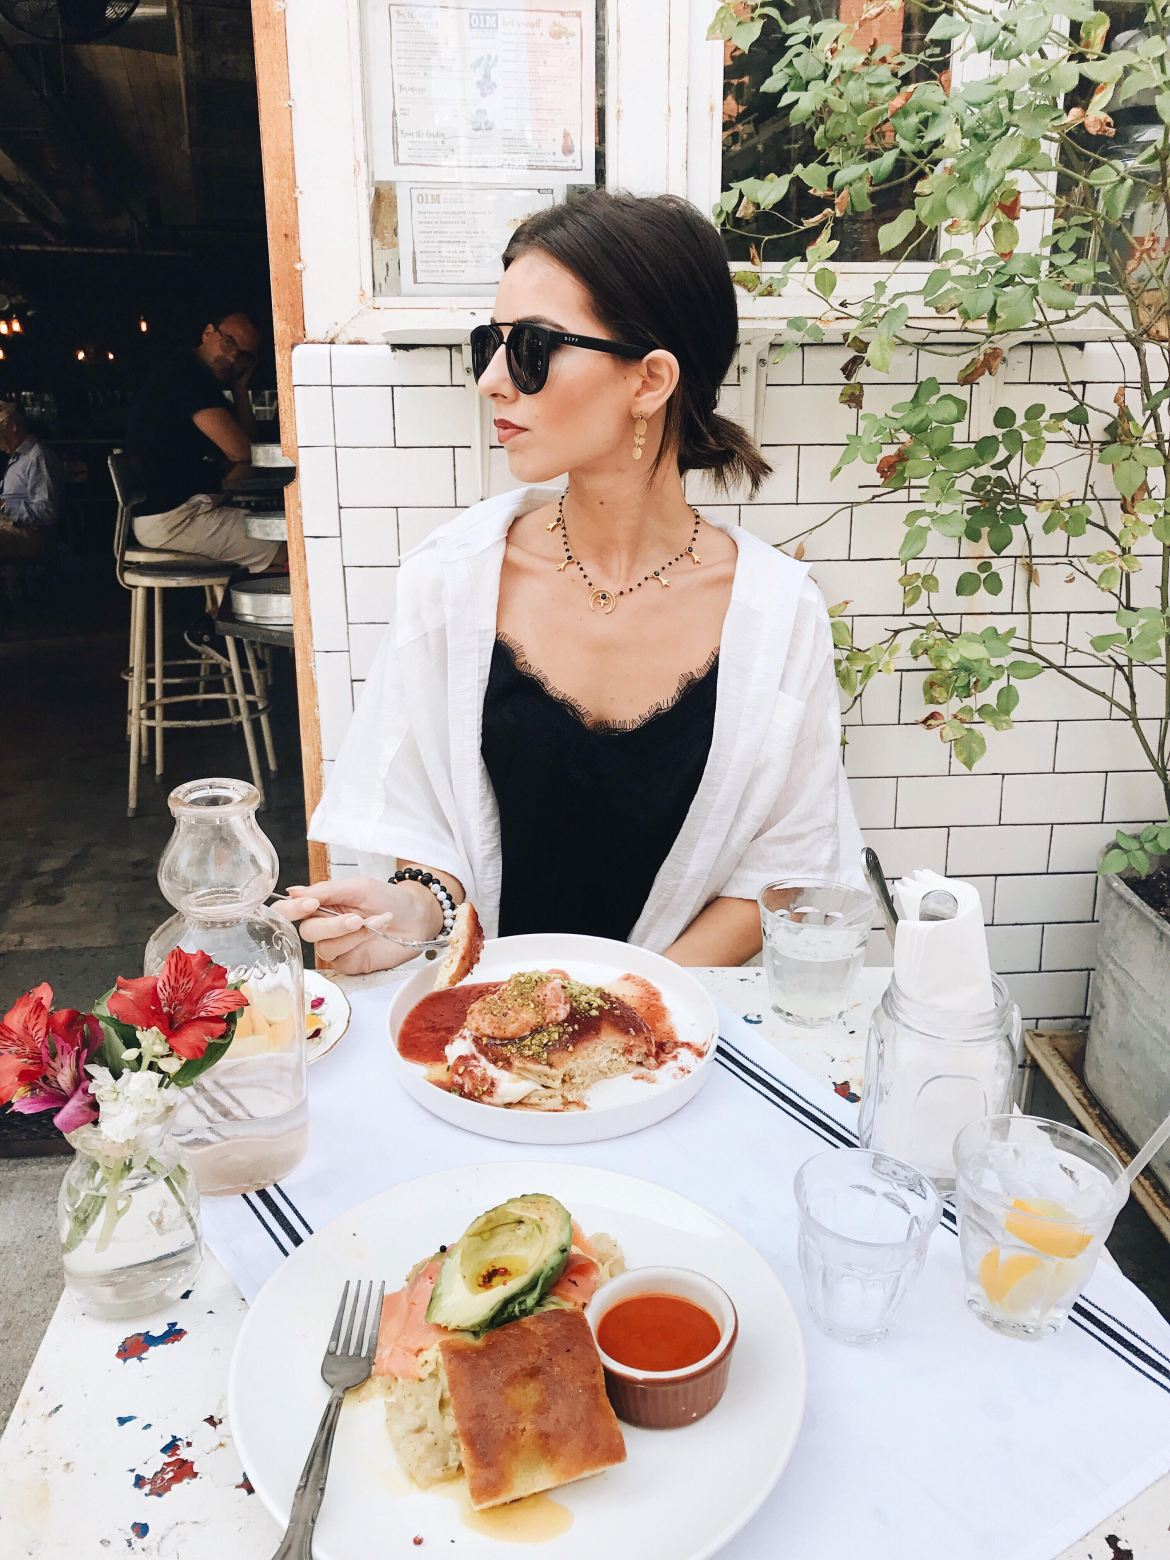 New York Fashion Week 2017 by Ashley Hodges of Ashley Terk // nyfw // NYC cafe // italian breakfast // pancakes // salmon // free people // nordstrom // diff eyewear